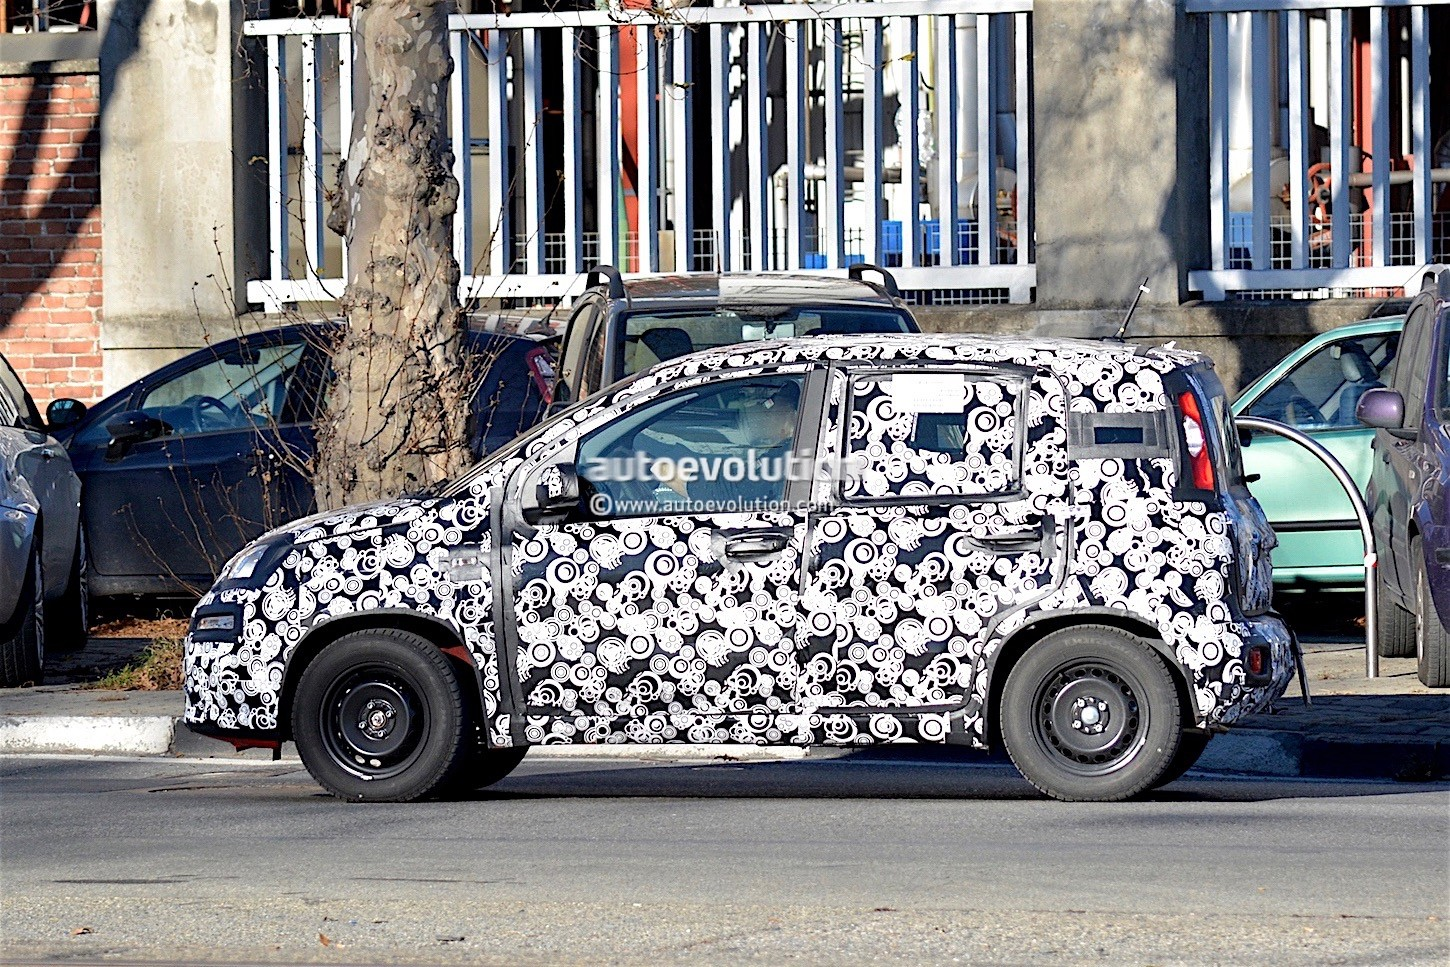 2017 Fiat Panda Facelift Spied Testing for the First Time - autoevolution